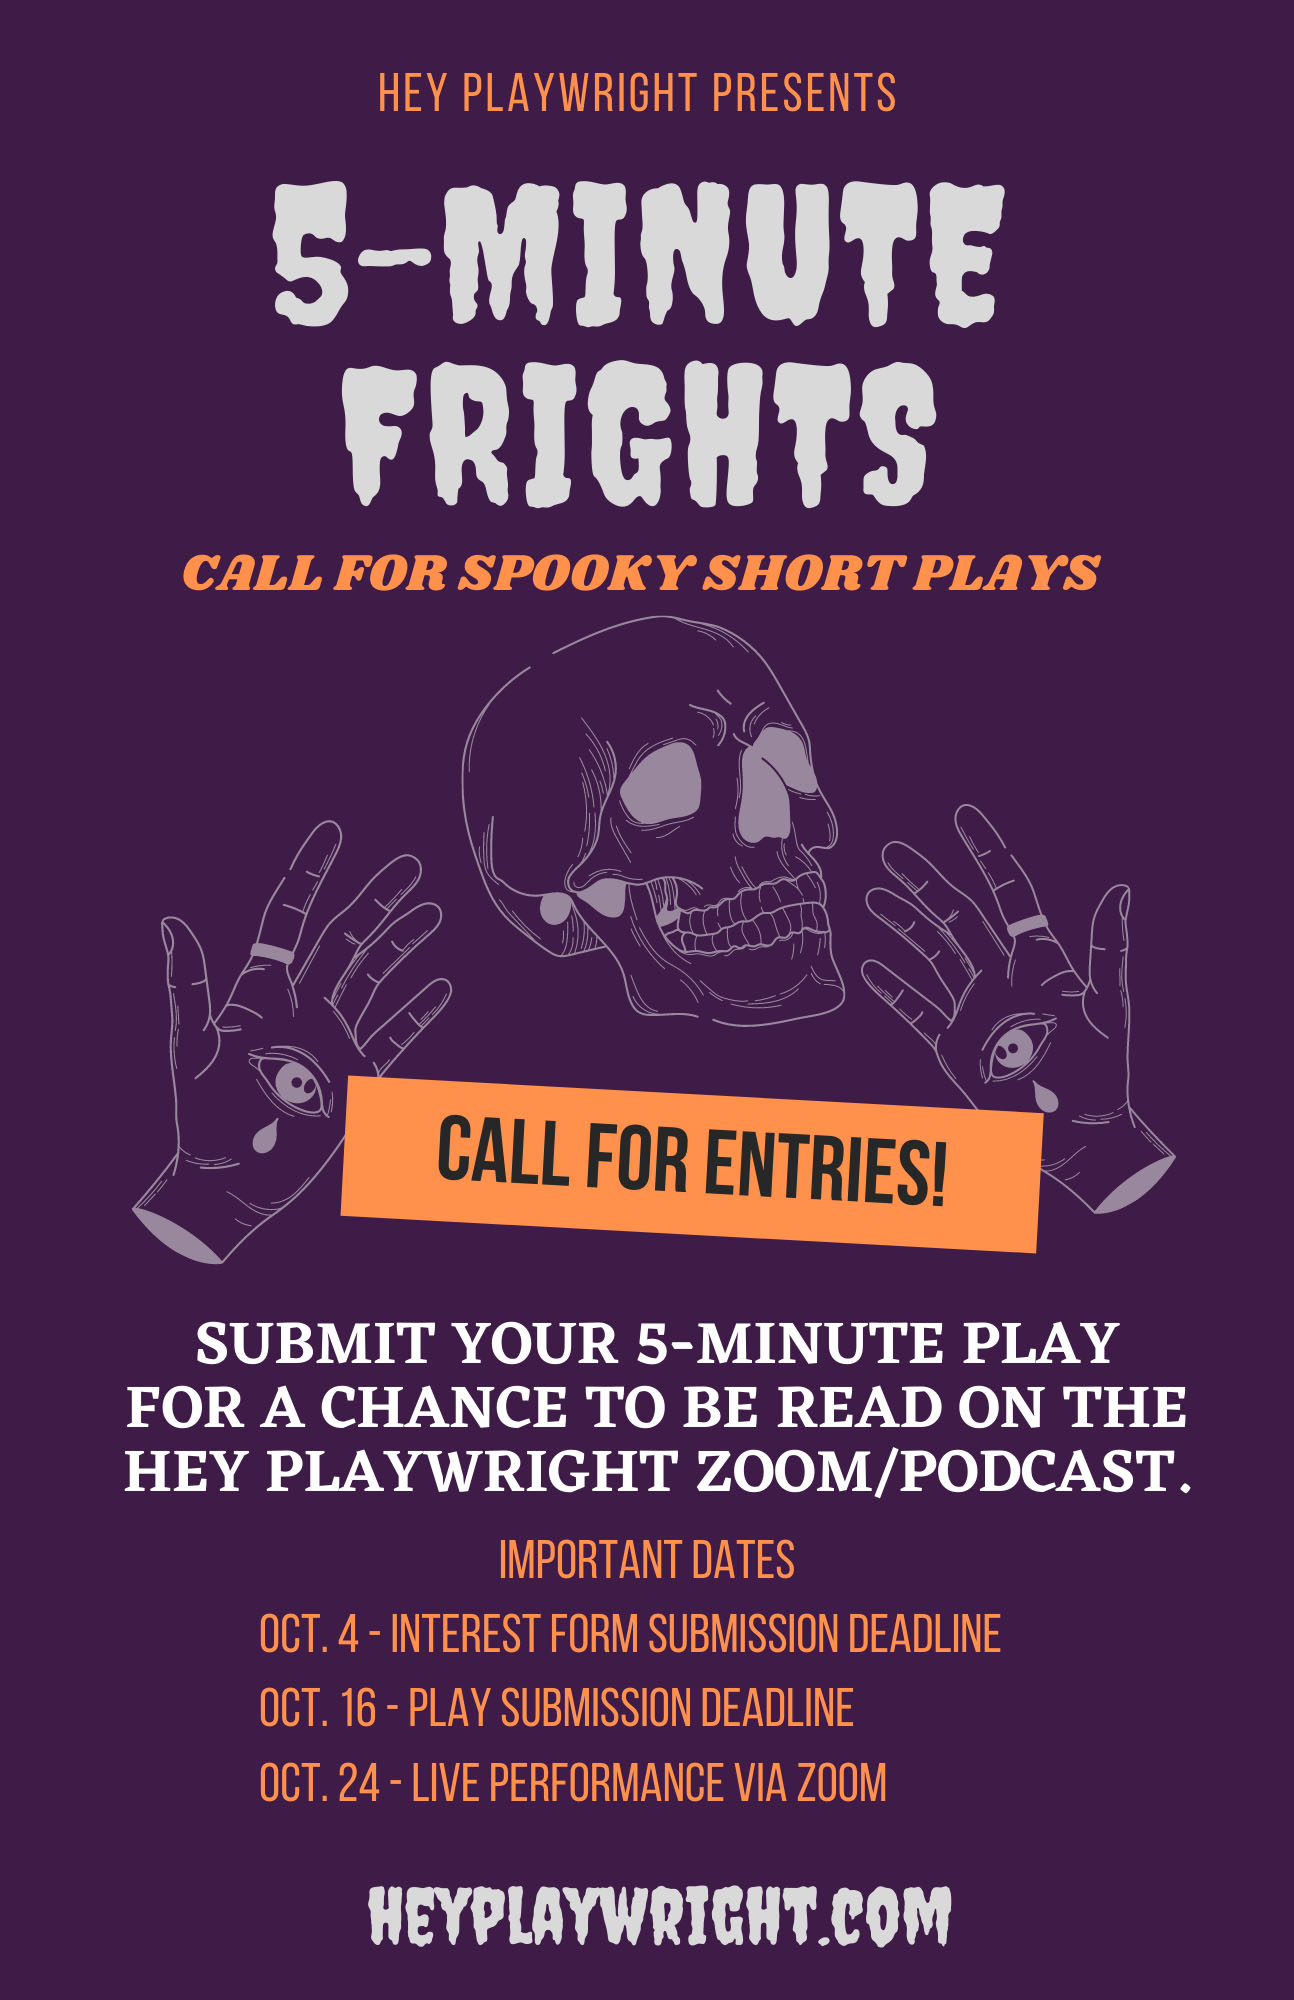 5 Minute Frights